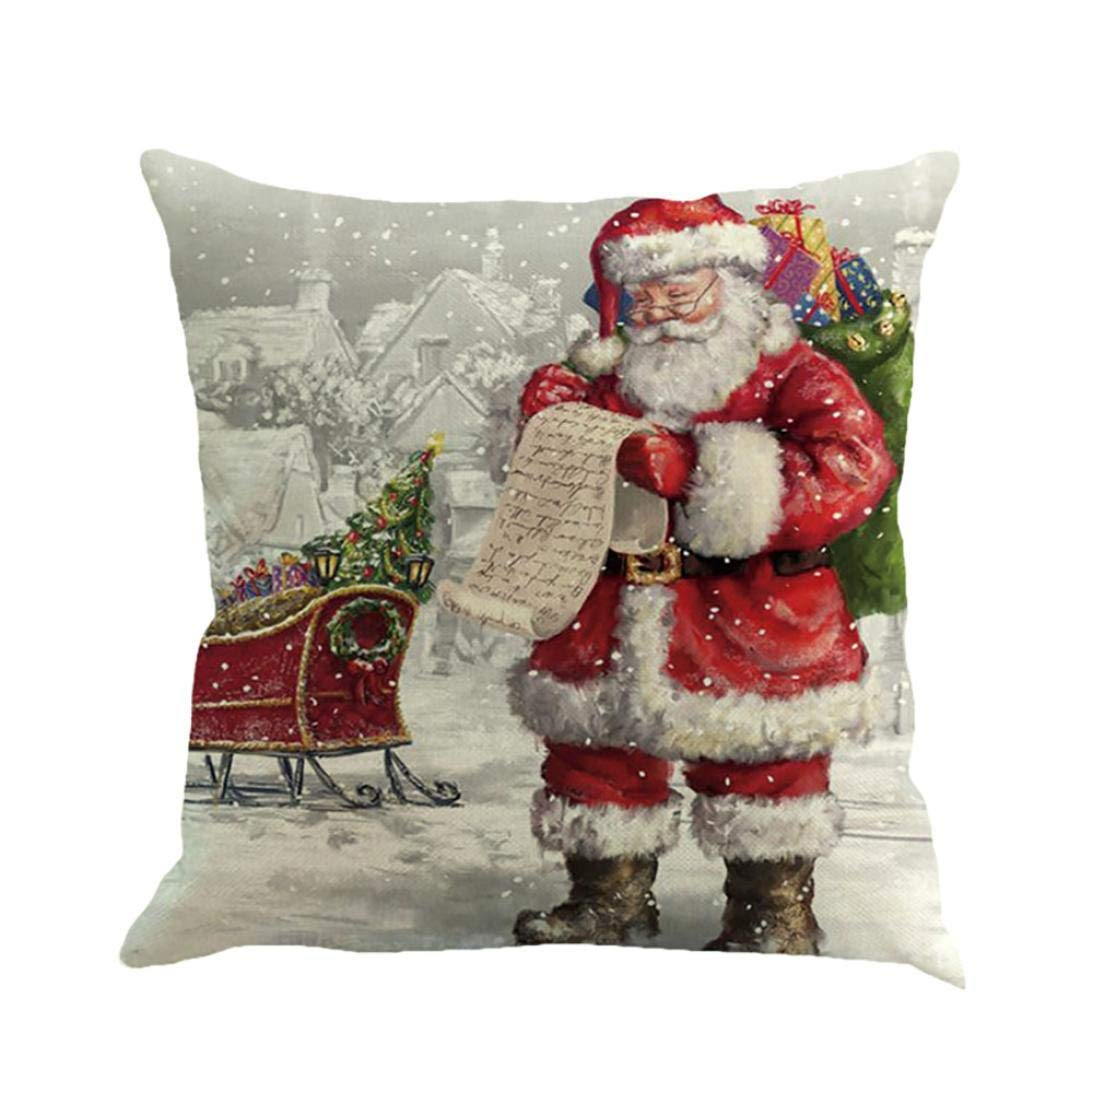 Throw Pillow Covers, E-Scenery Clearance Sale! Santa Claus Christmas Printing Square Decorative Throw Pillow Cases Cushion Cover for Sofa Bedroom Car Home Decor, 18 x 18 inch (H)